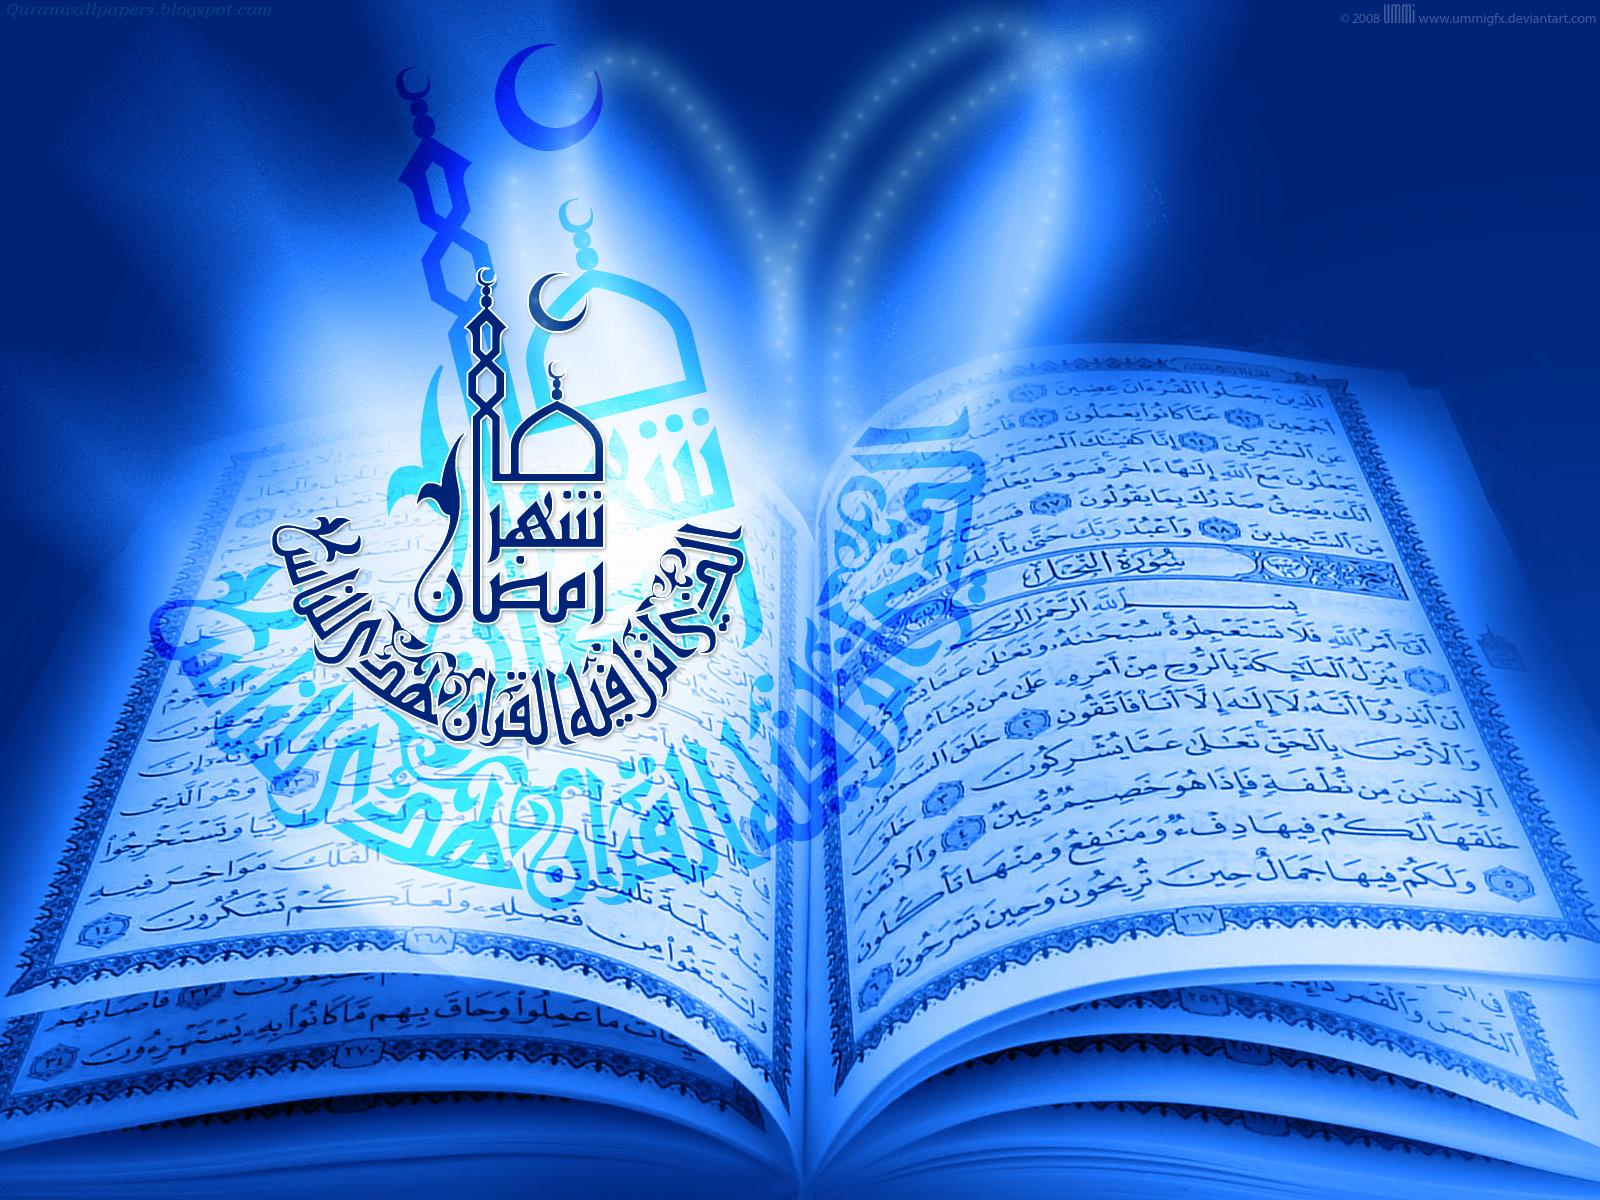 RAMADAN 2012 WALLPAPERS SET 1 | Quran, Islam, Wazaif, Ayat ...